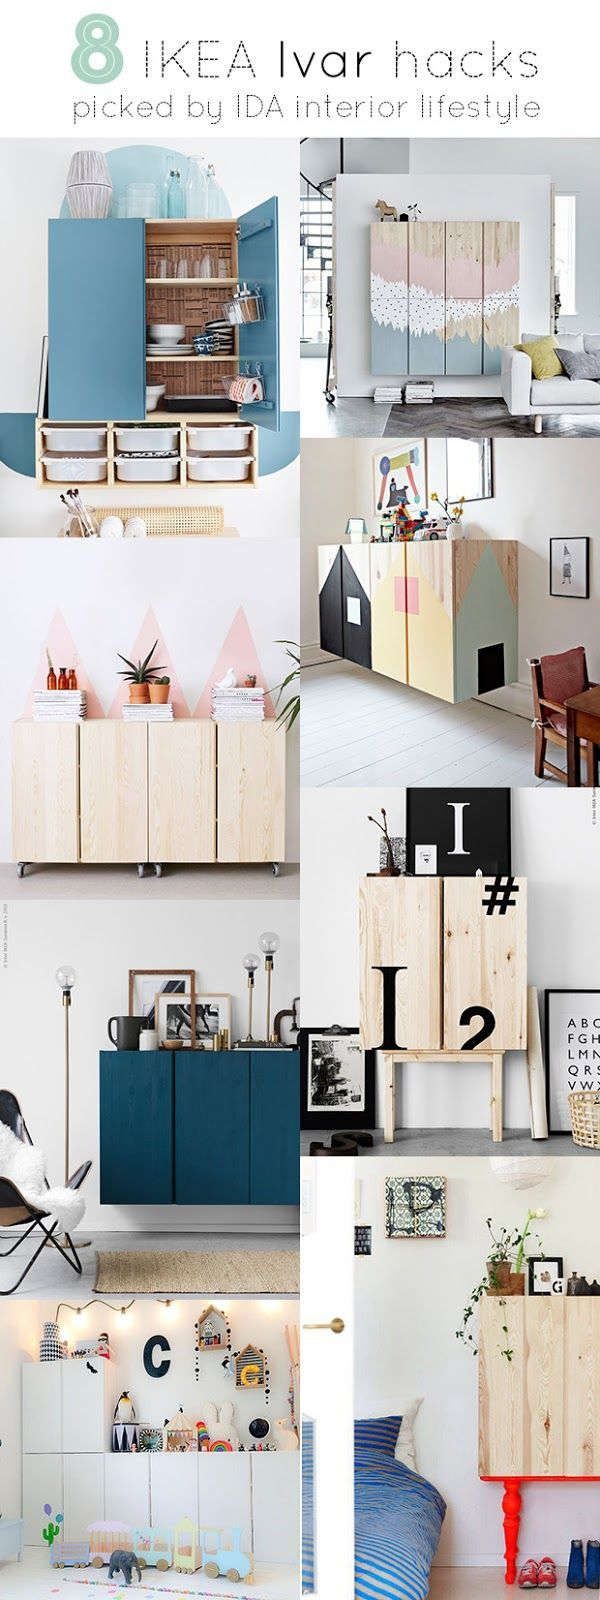 arhaus kitchen table black cabinets 17 best images about ikea hacks on pinterest | ...